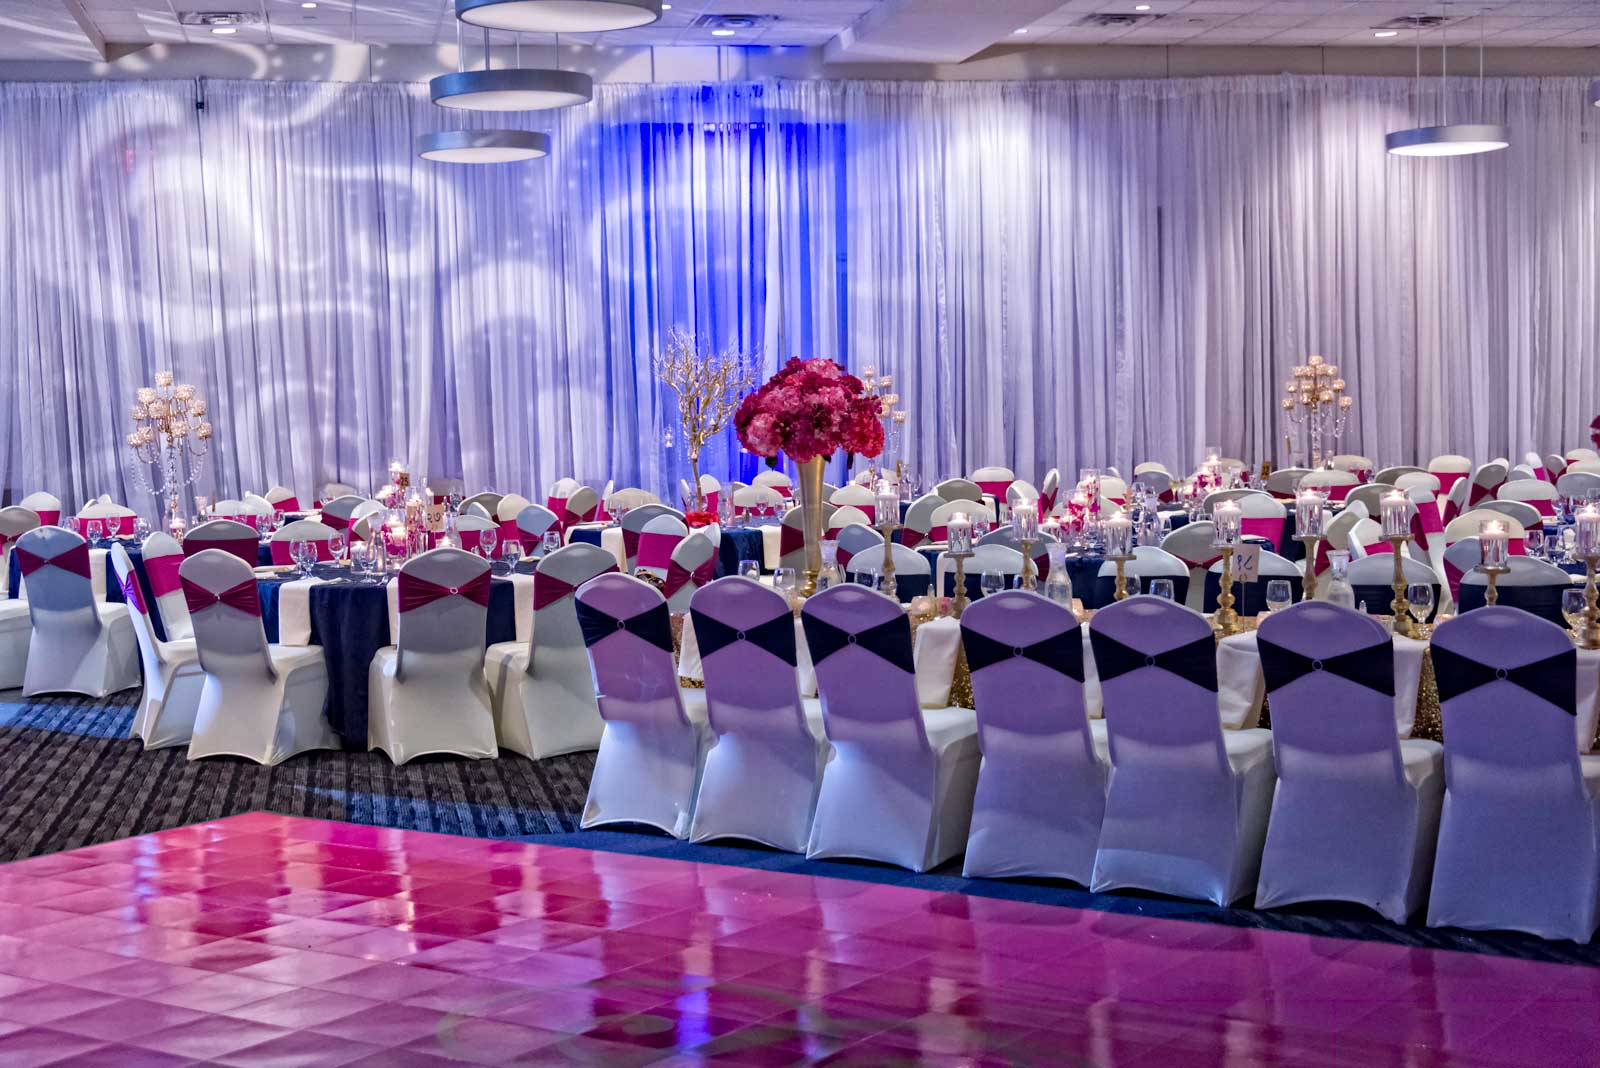 Wedding at the Red Oak Ballroom, Norris Centers at Houston/CityCentre